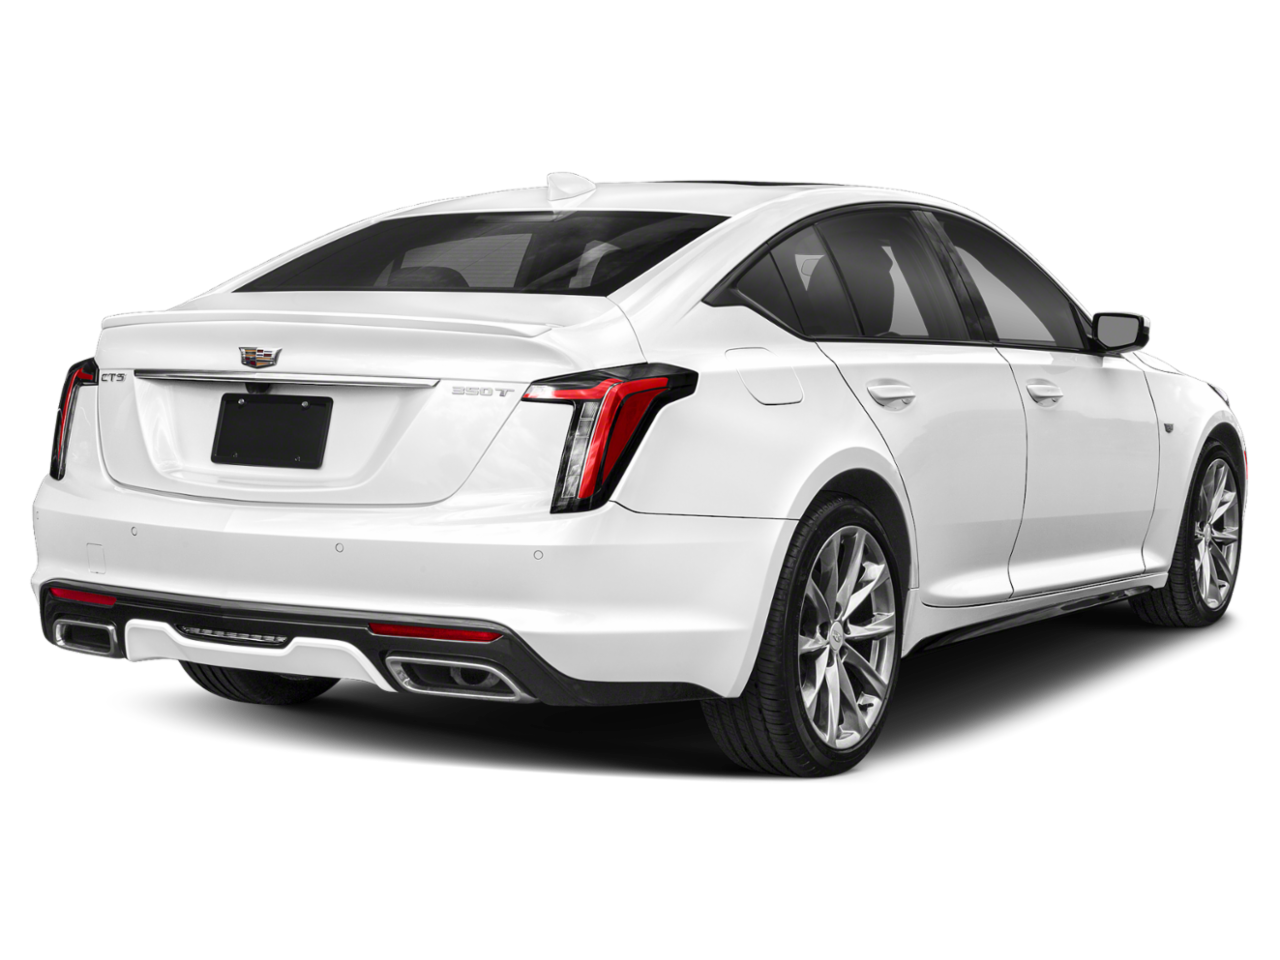 New 2020 Cadillac CT5 Luxury